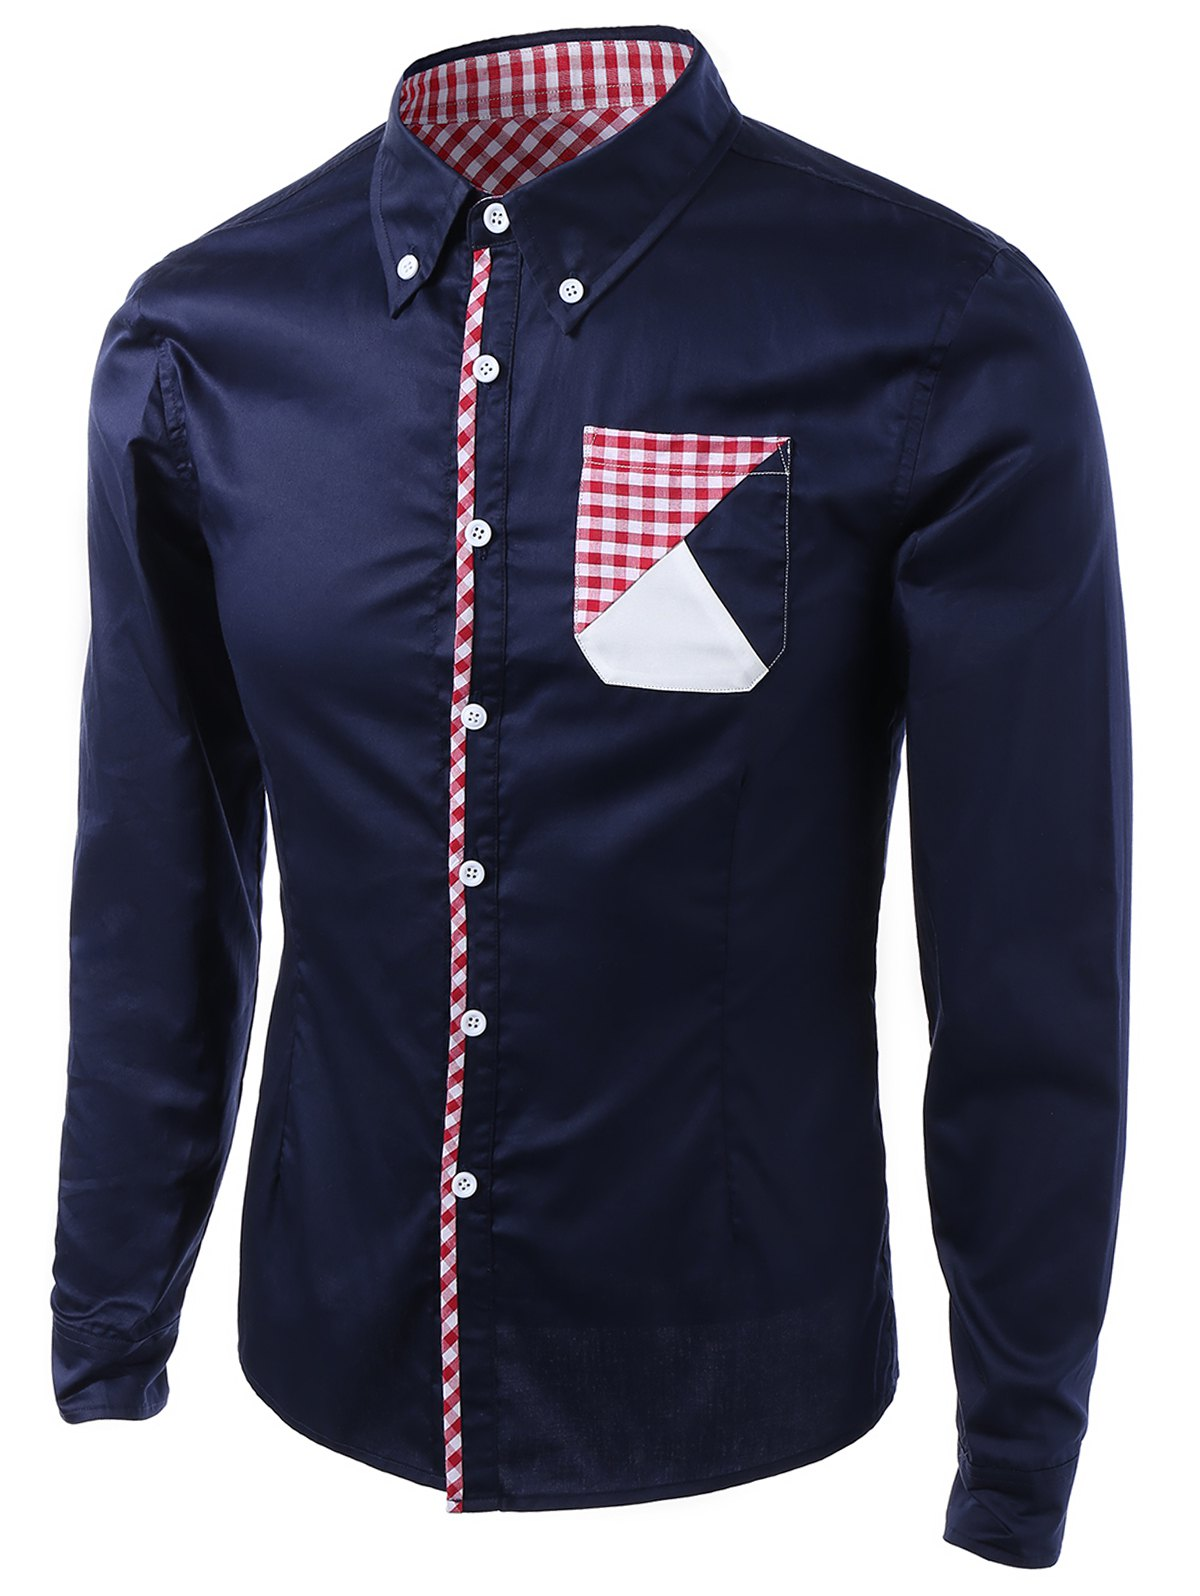 Unique Gingham Splicing Design Turn-Down Collar Long Sleeve Shirt